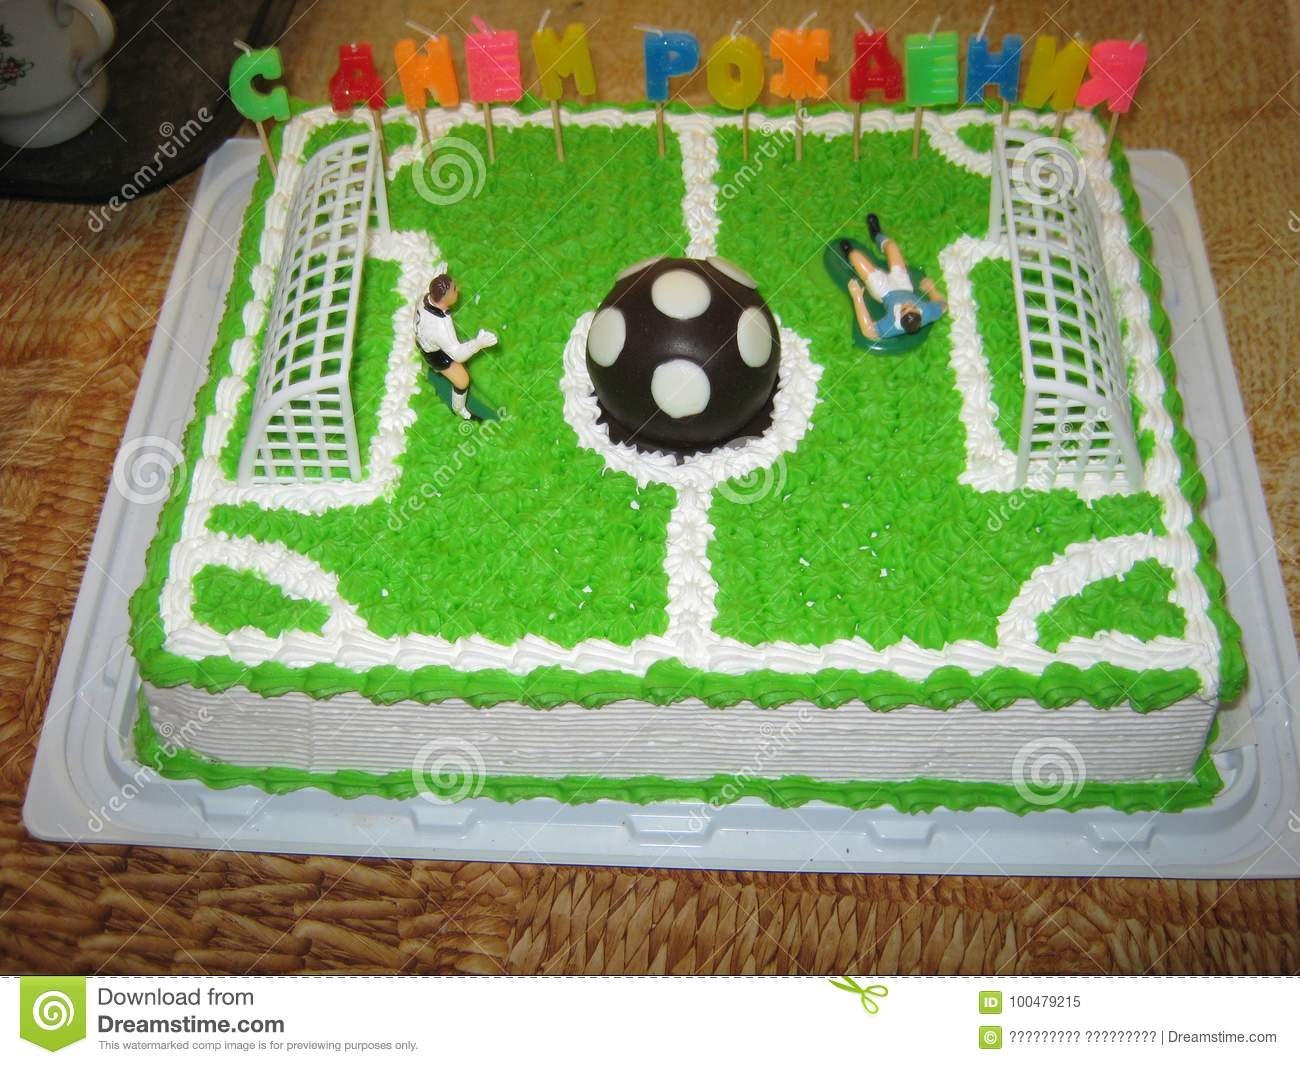 Astonishing Cream Cake Guy Football Player On His Birthday With A Ball And Personalised Birthday Cards Beptaeletsinfo